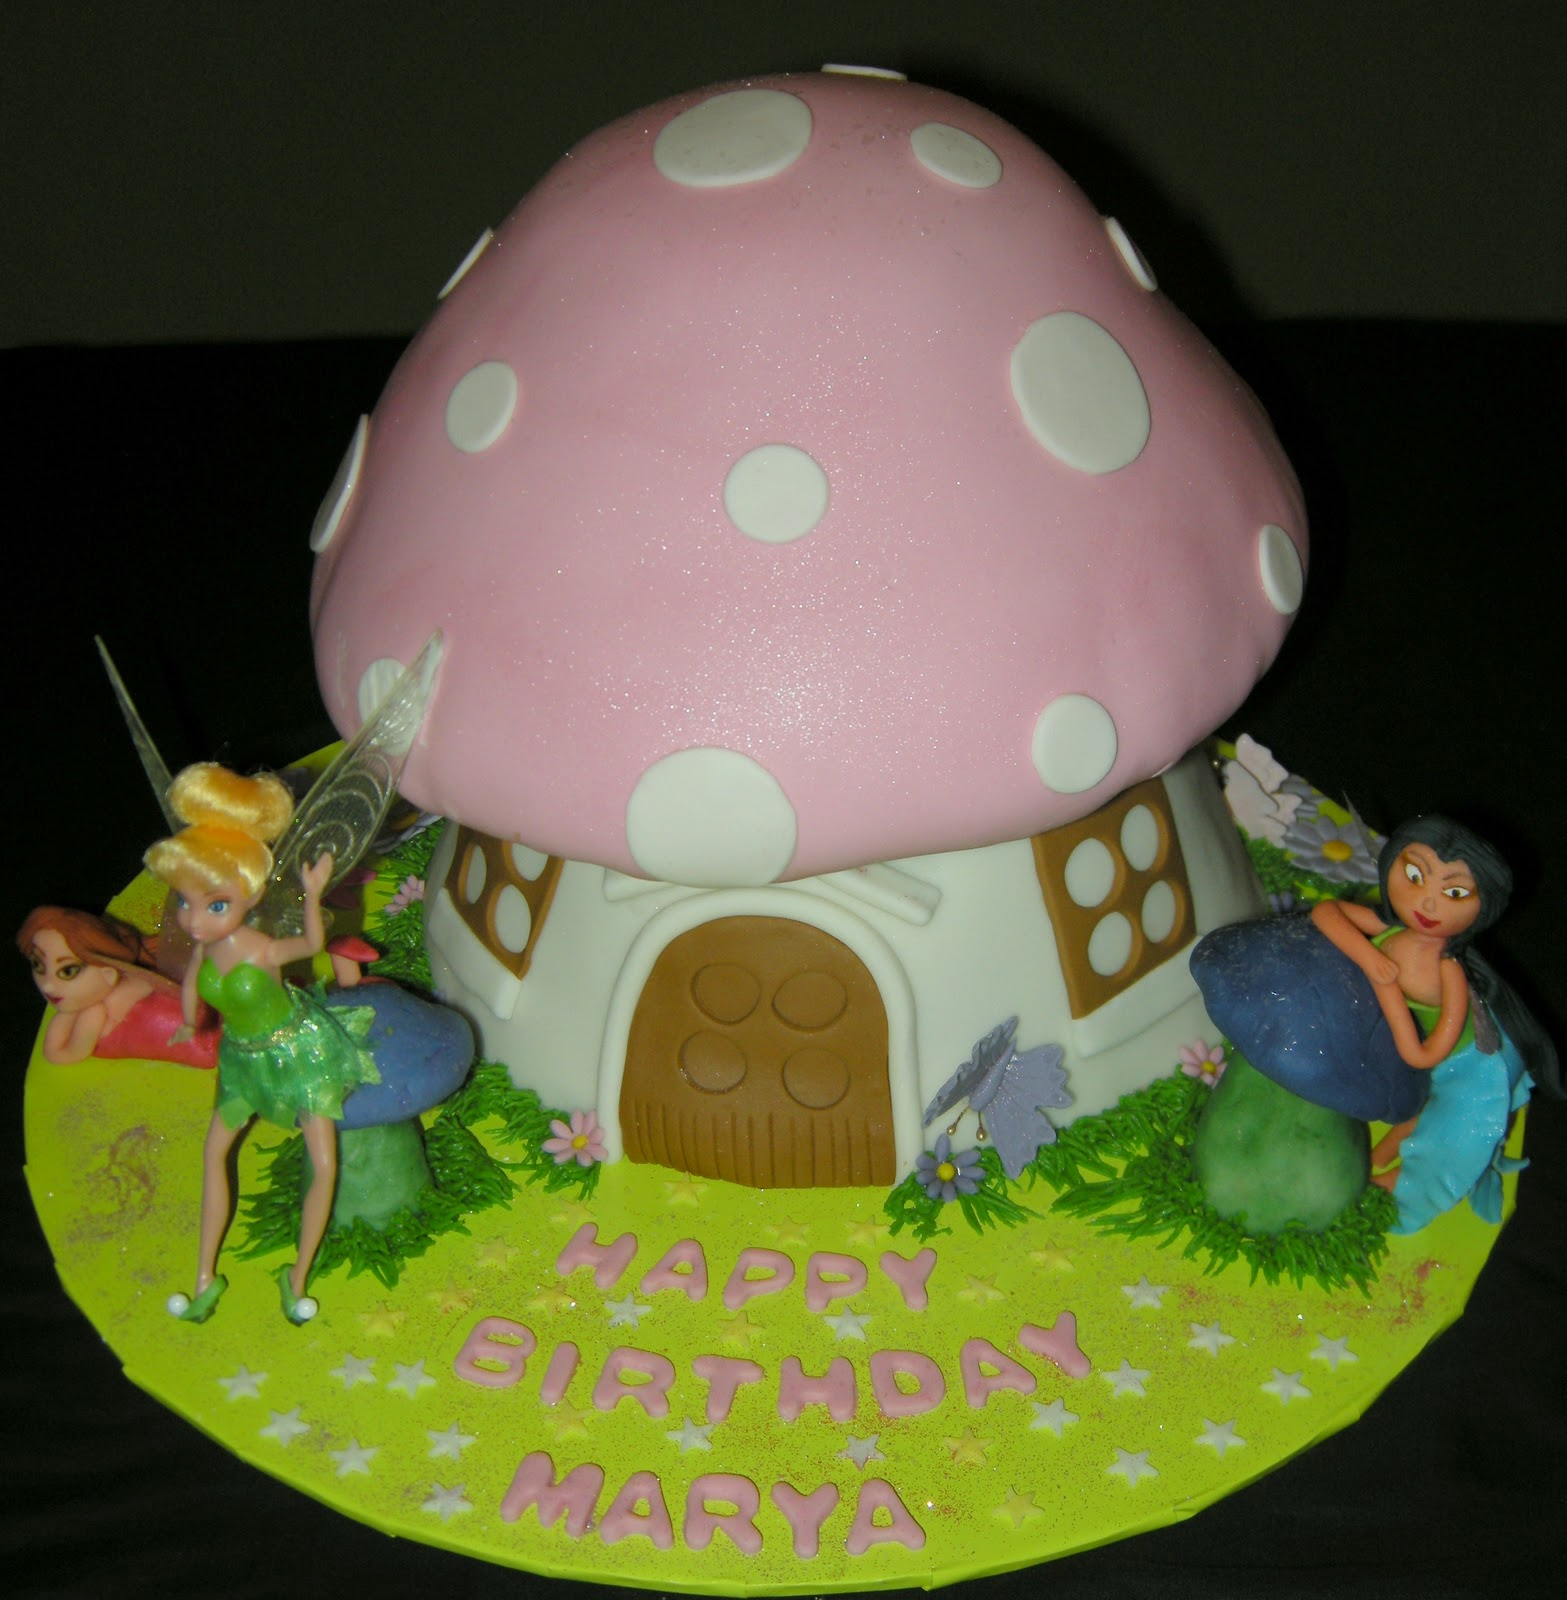 Harshi S Cakes Amp Bakes Tinkerbell Theme Cake